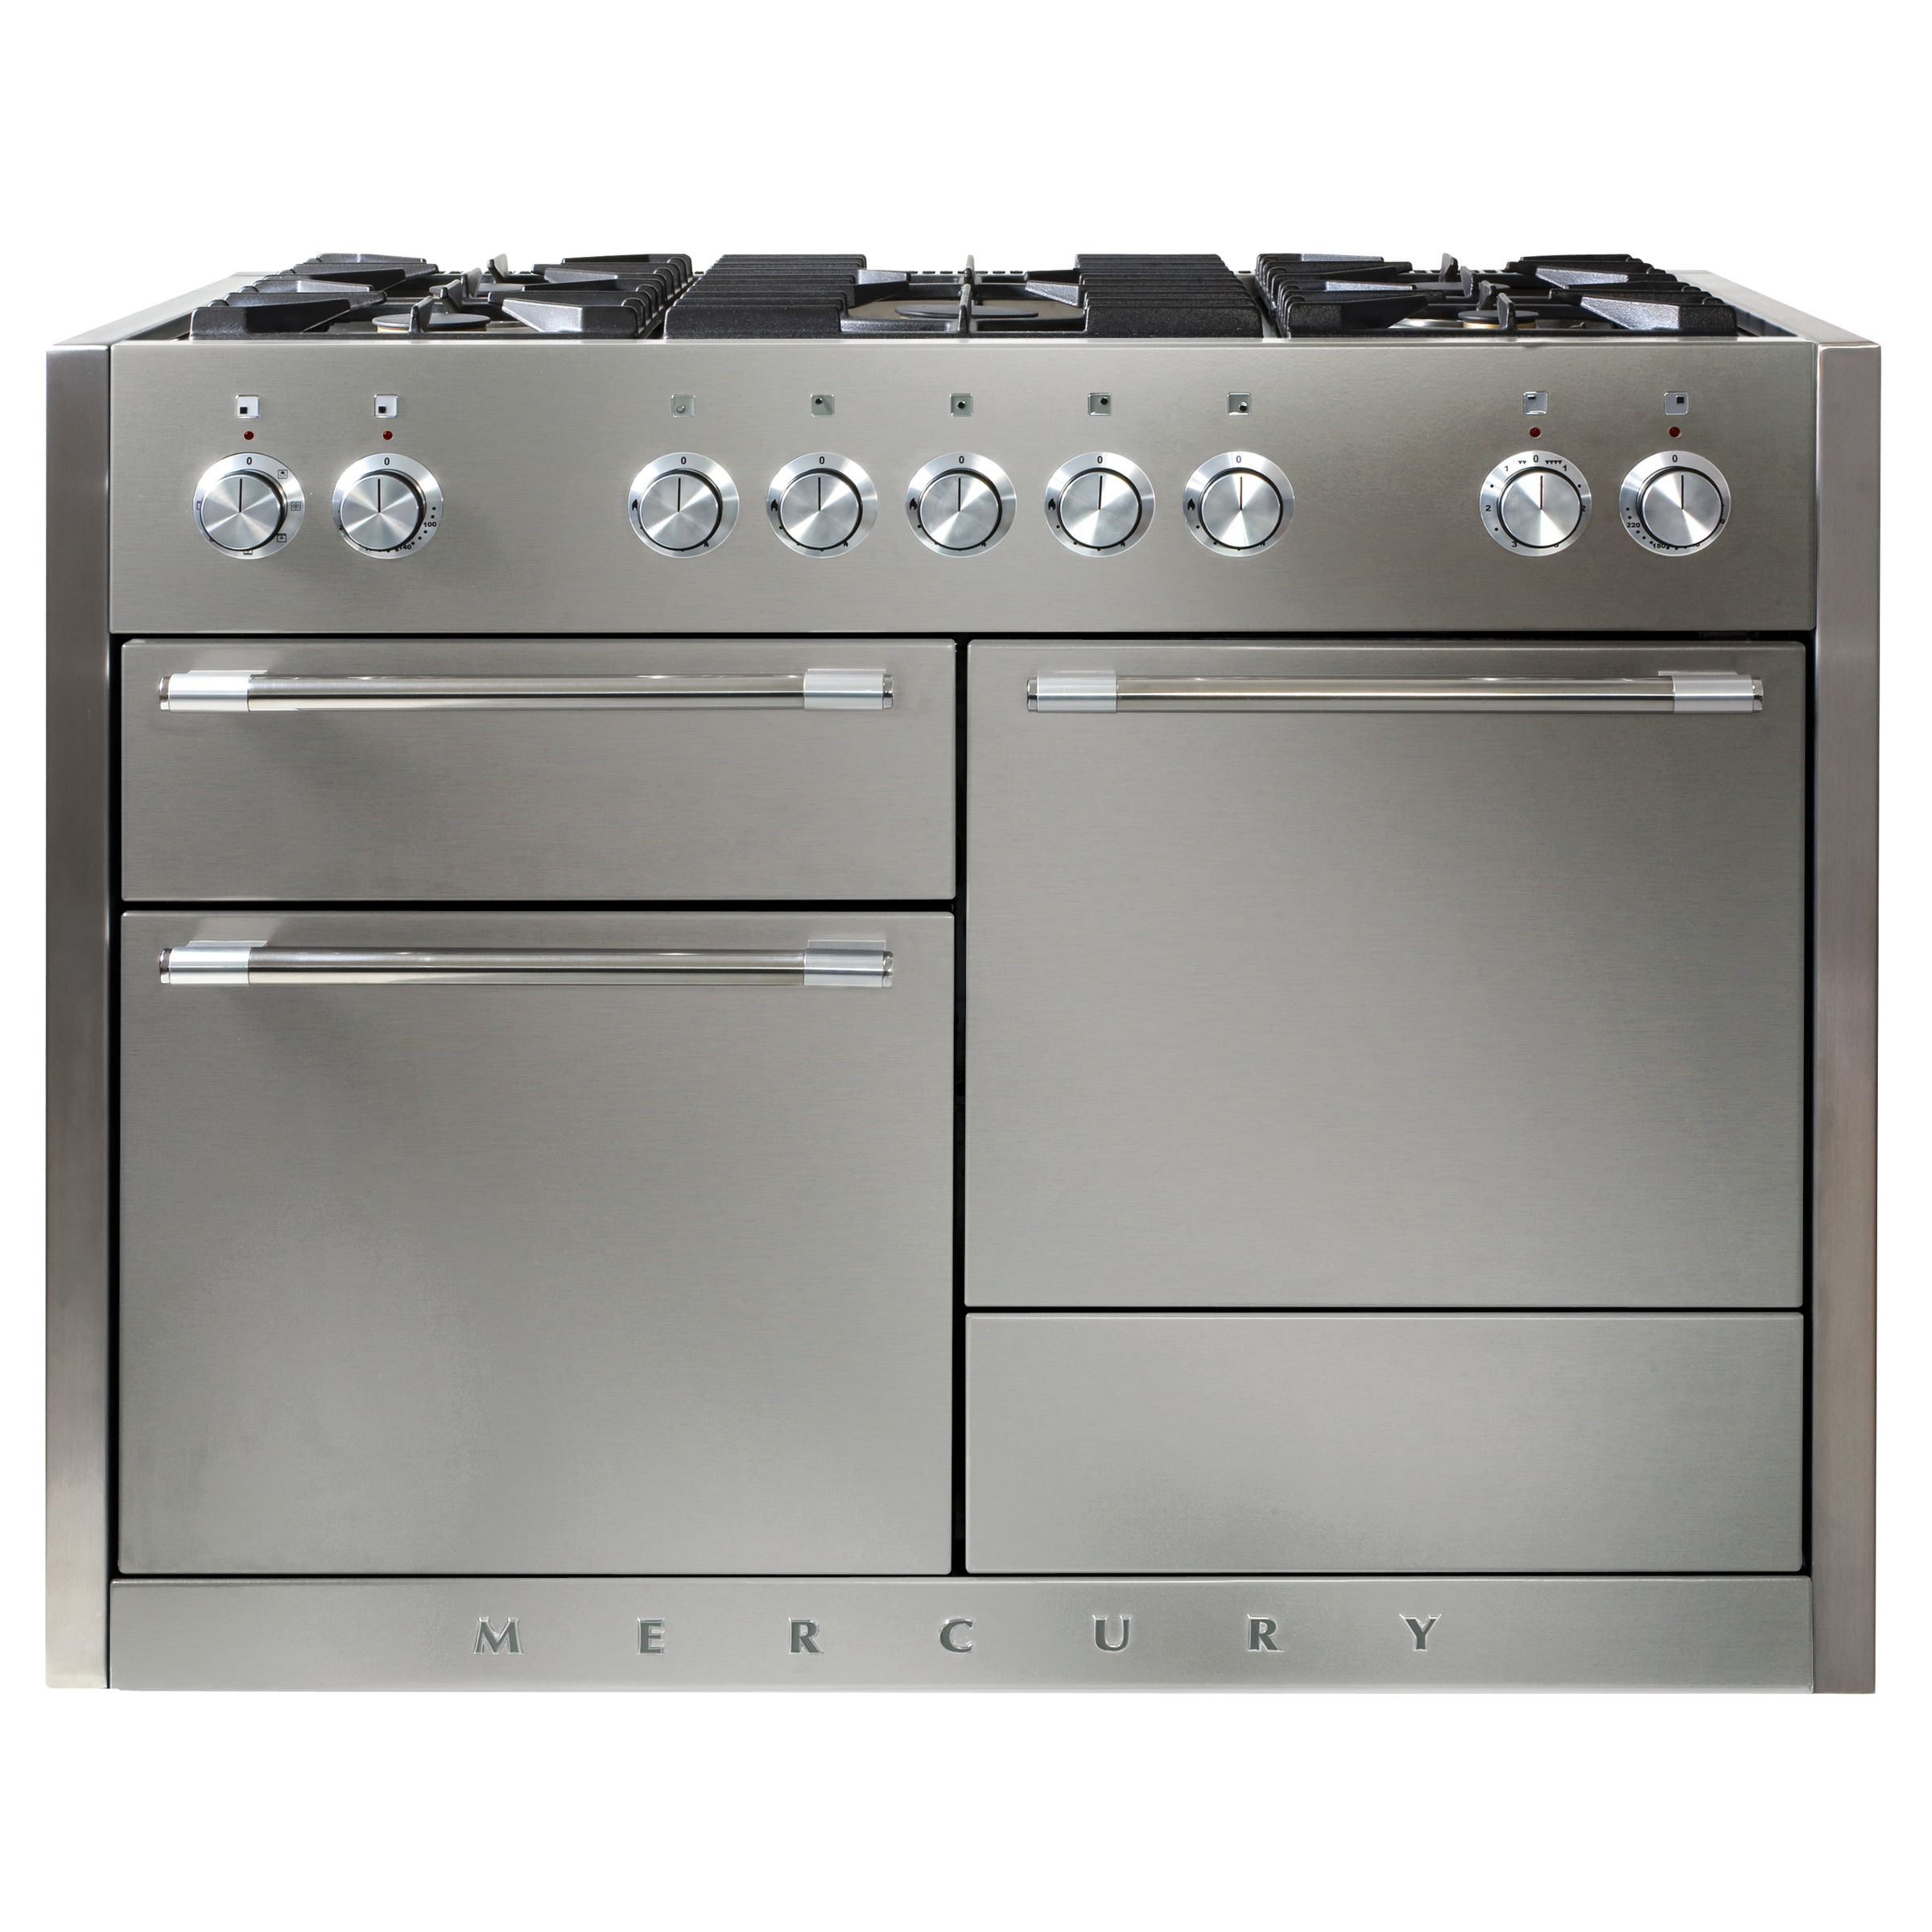 Mercury MCY1200DFSS Dual Fuel Cooker, Stainless Steel at John Lewis